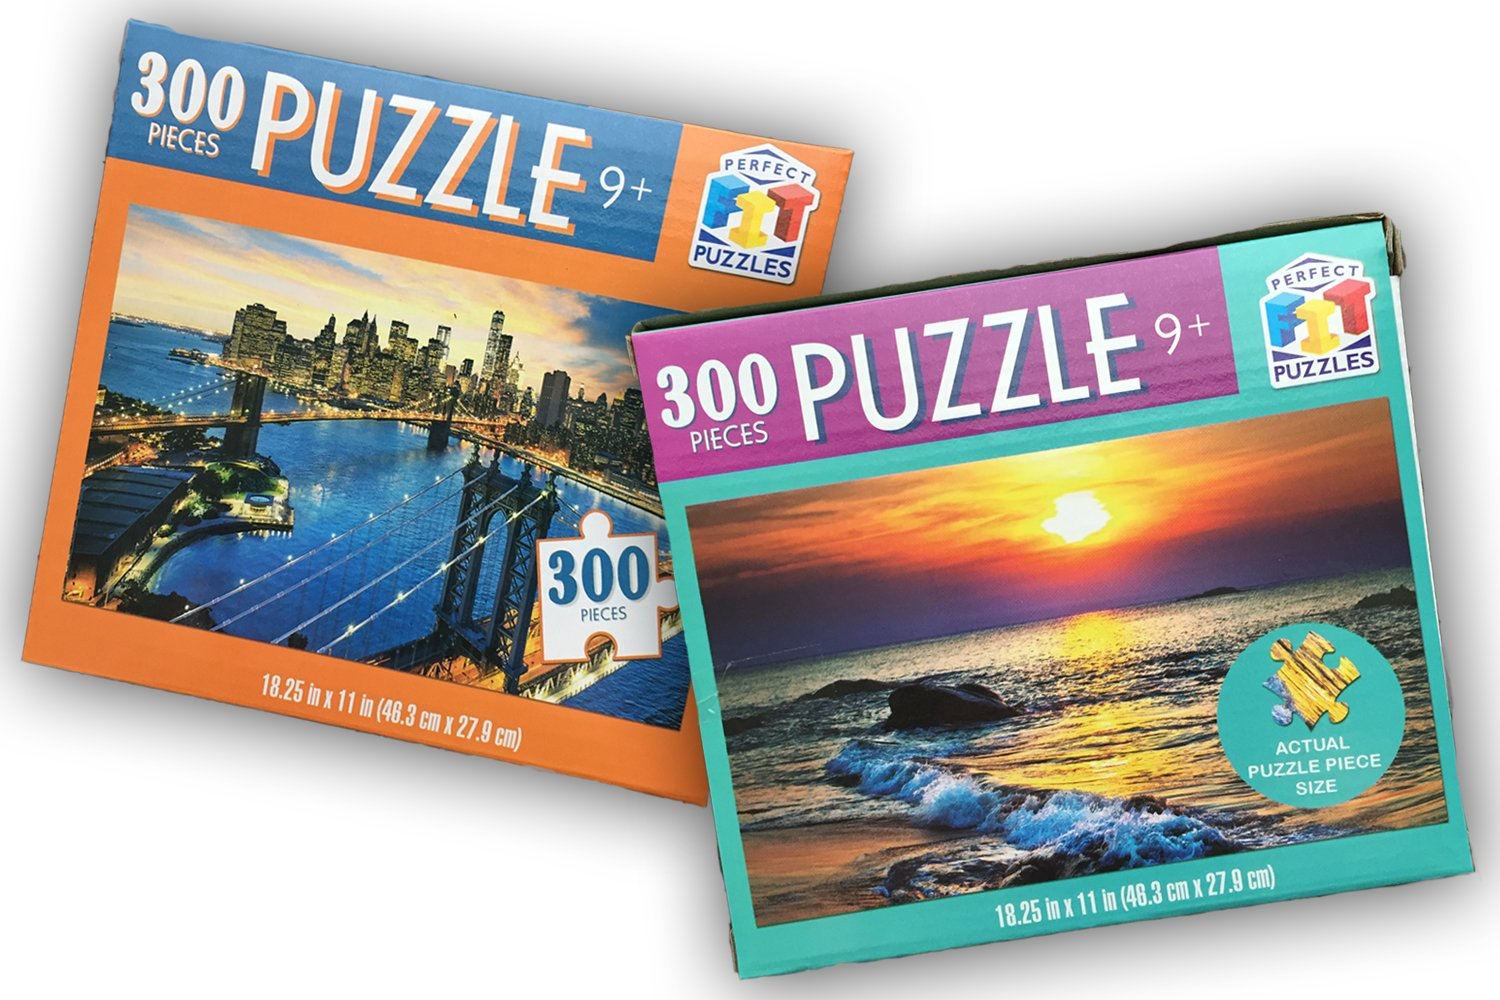 Perfect Fit Puzzles (Set of 2 Scenic Picture Boxes) - 300 Piece Jigsaw Puzzle for Kids or Adults / Travel or Home